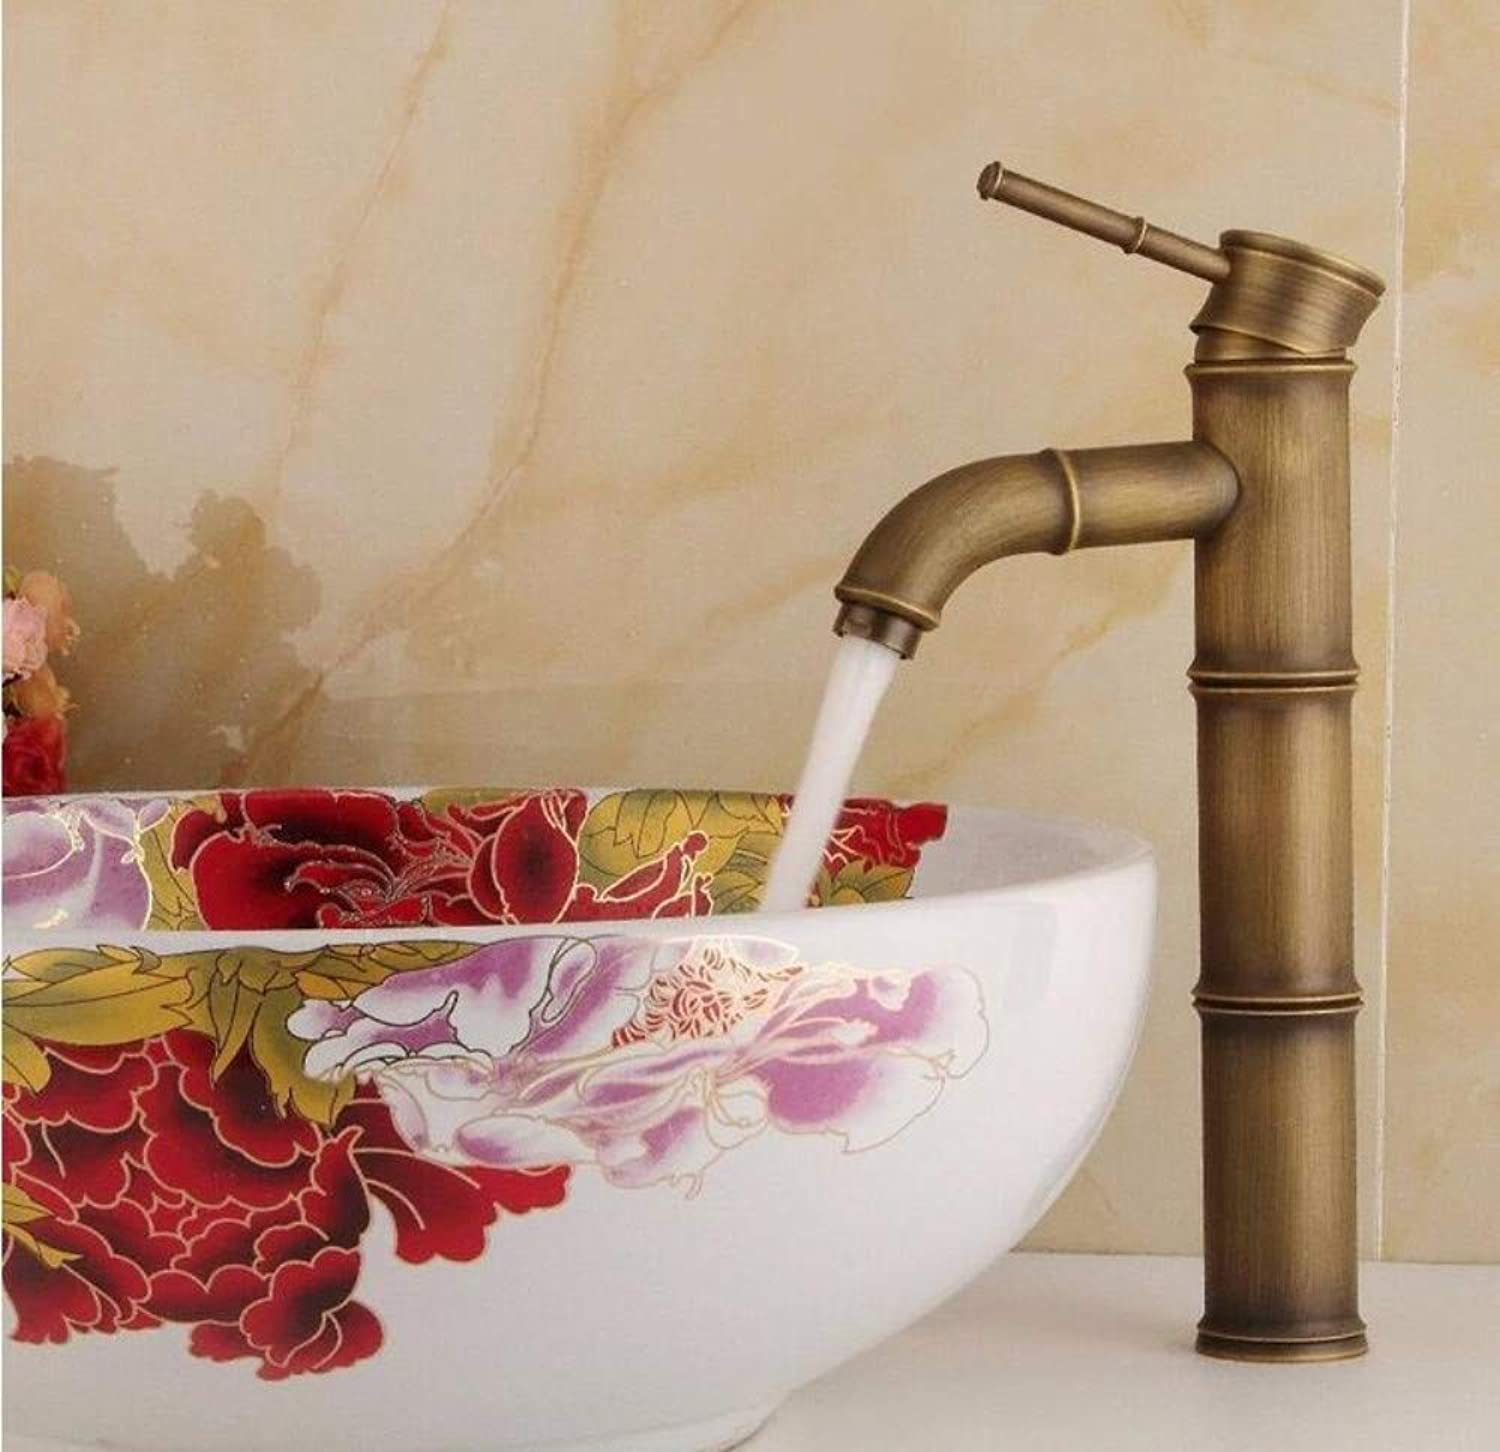 Mixer Basin Taps Single Hole Water Valve Sink Mixer Tap for Lavatory Bathroom Vanity Sink Faucet